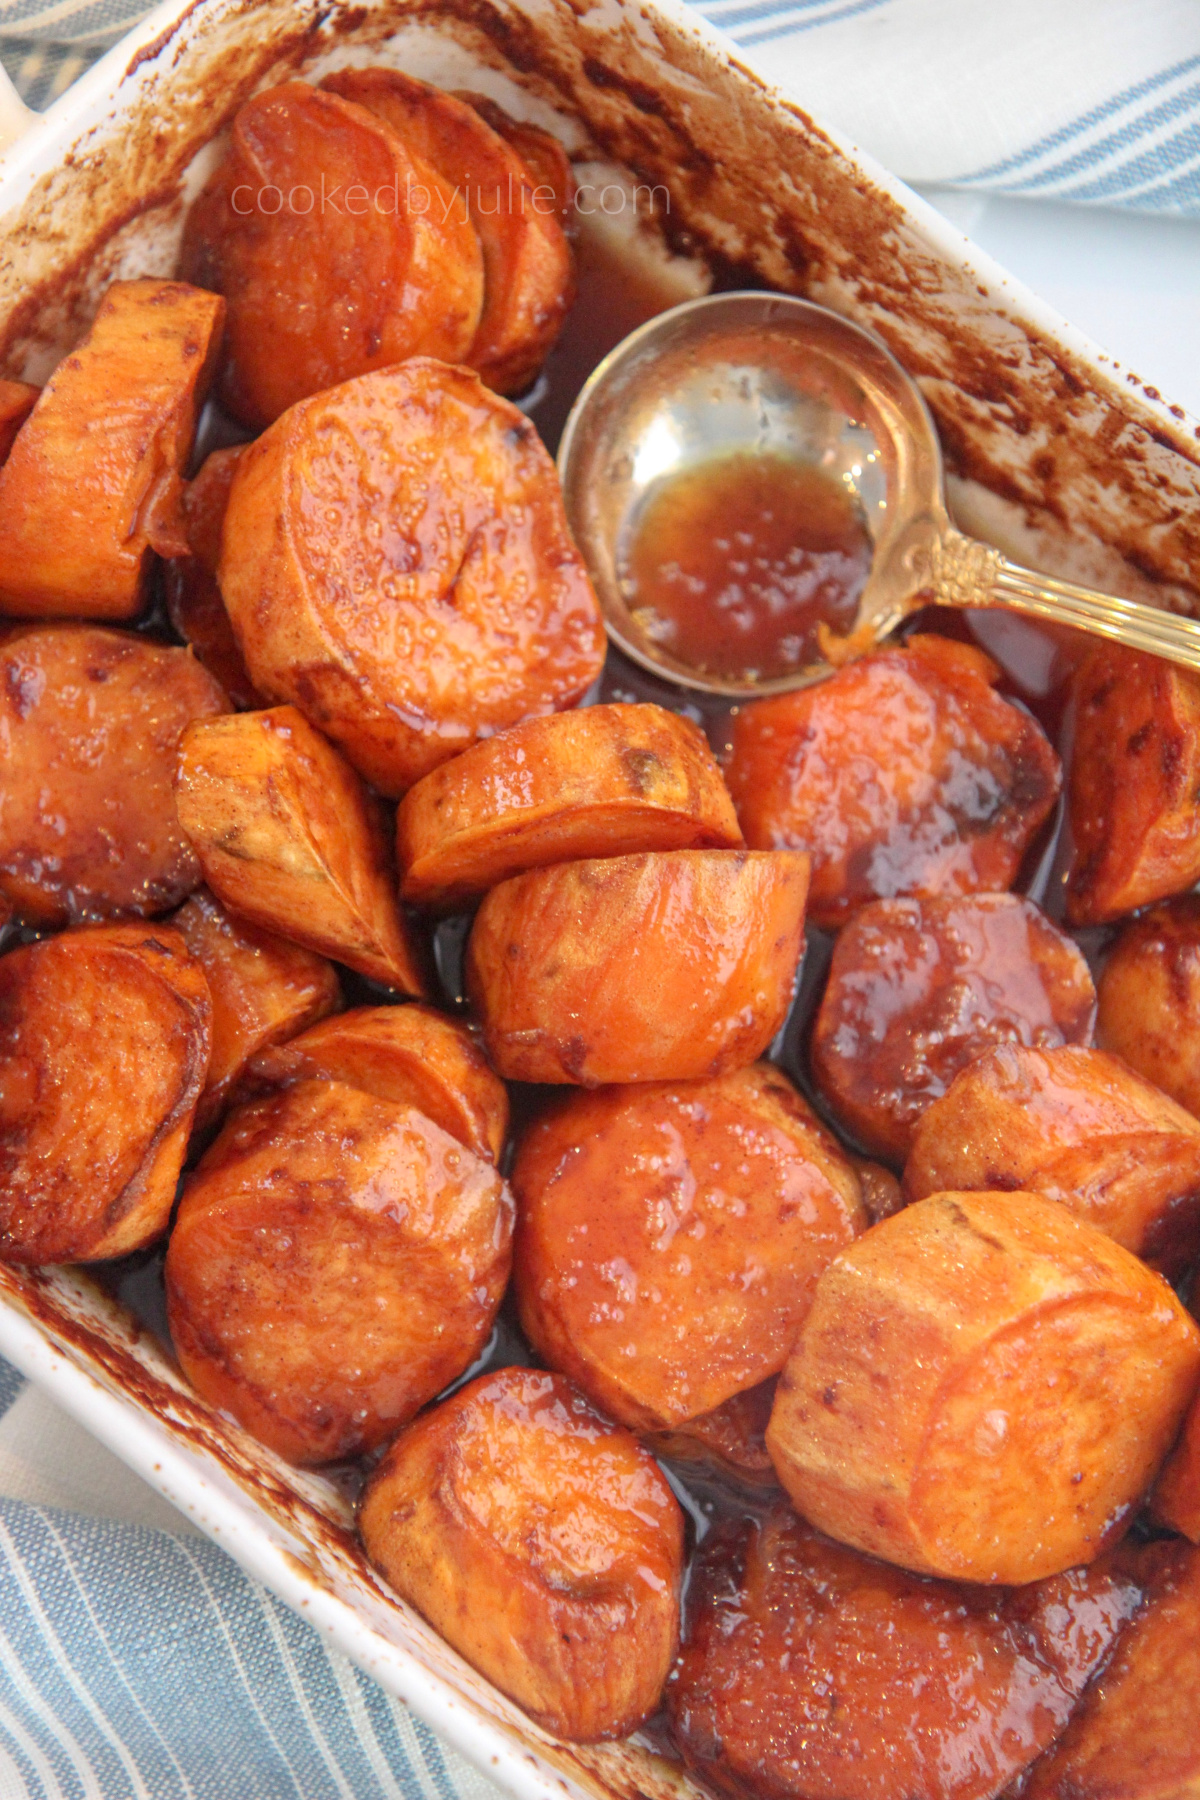 Baked Candied Yams Recipe Video Cooked By Julie